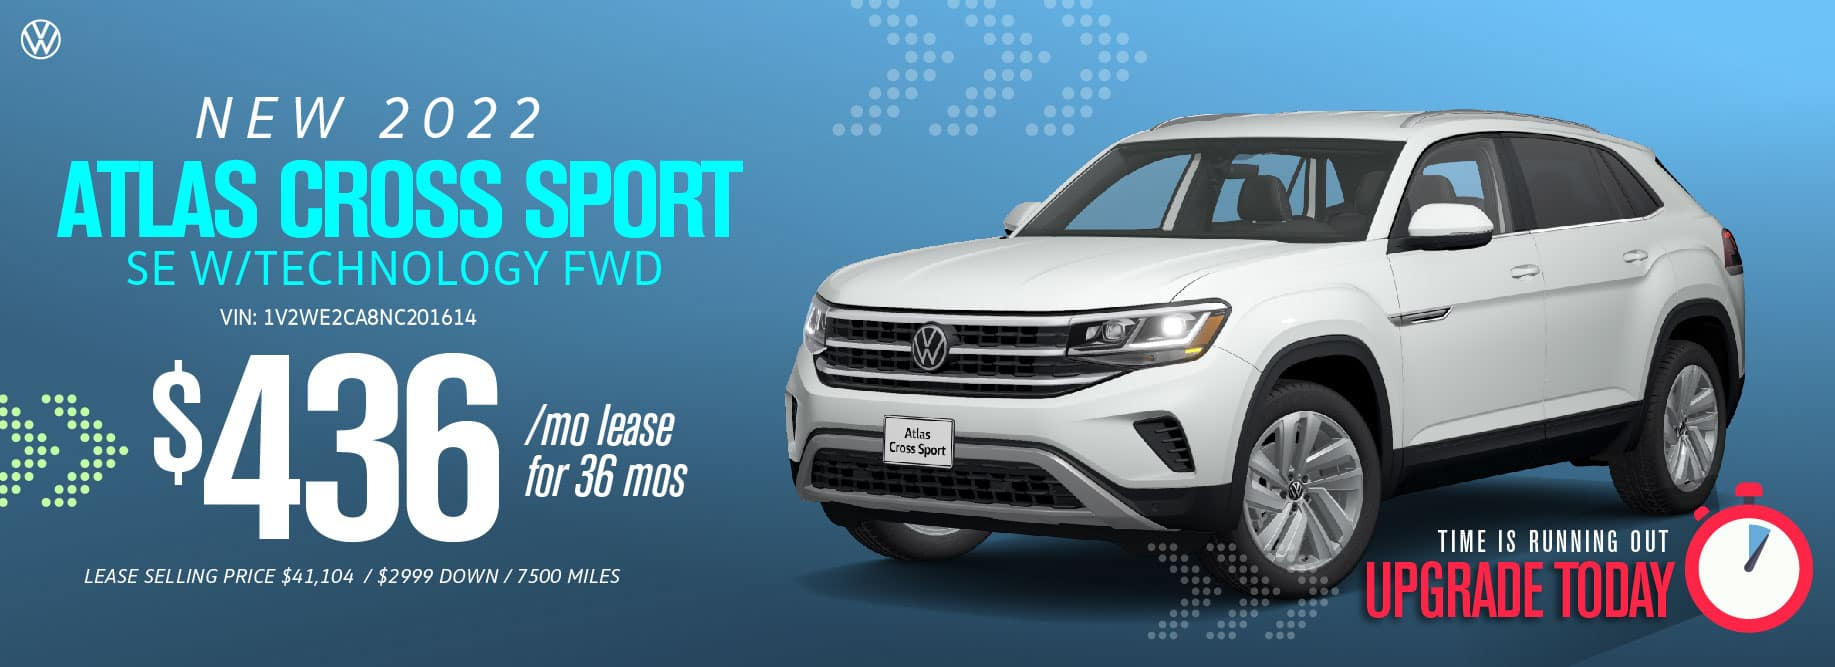 Lease the Atlas Cross Sport starting at $436/mo at VW SouthTowne